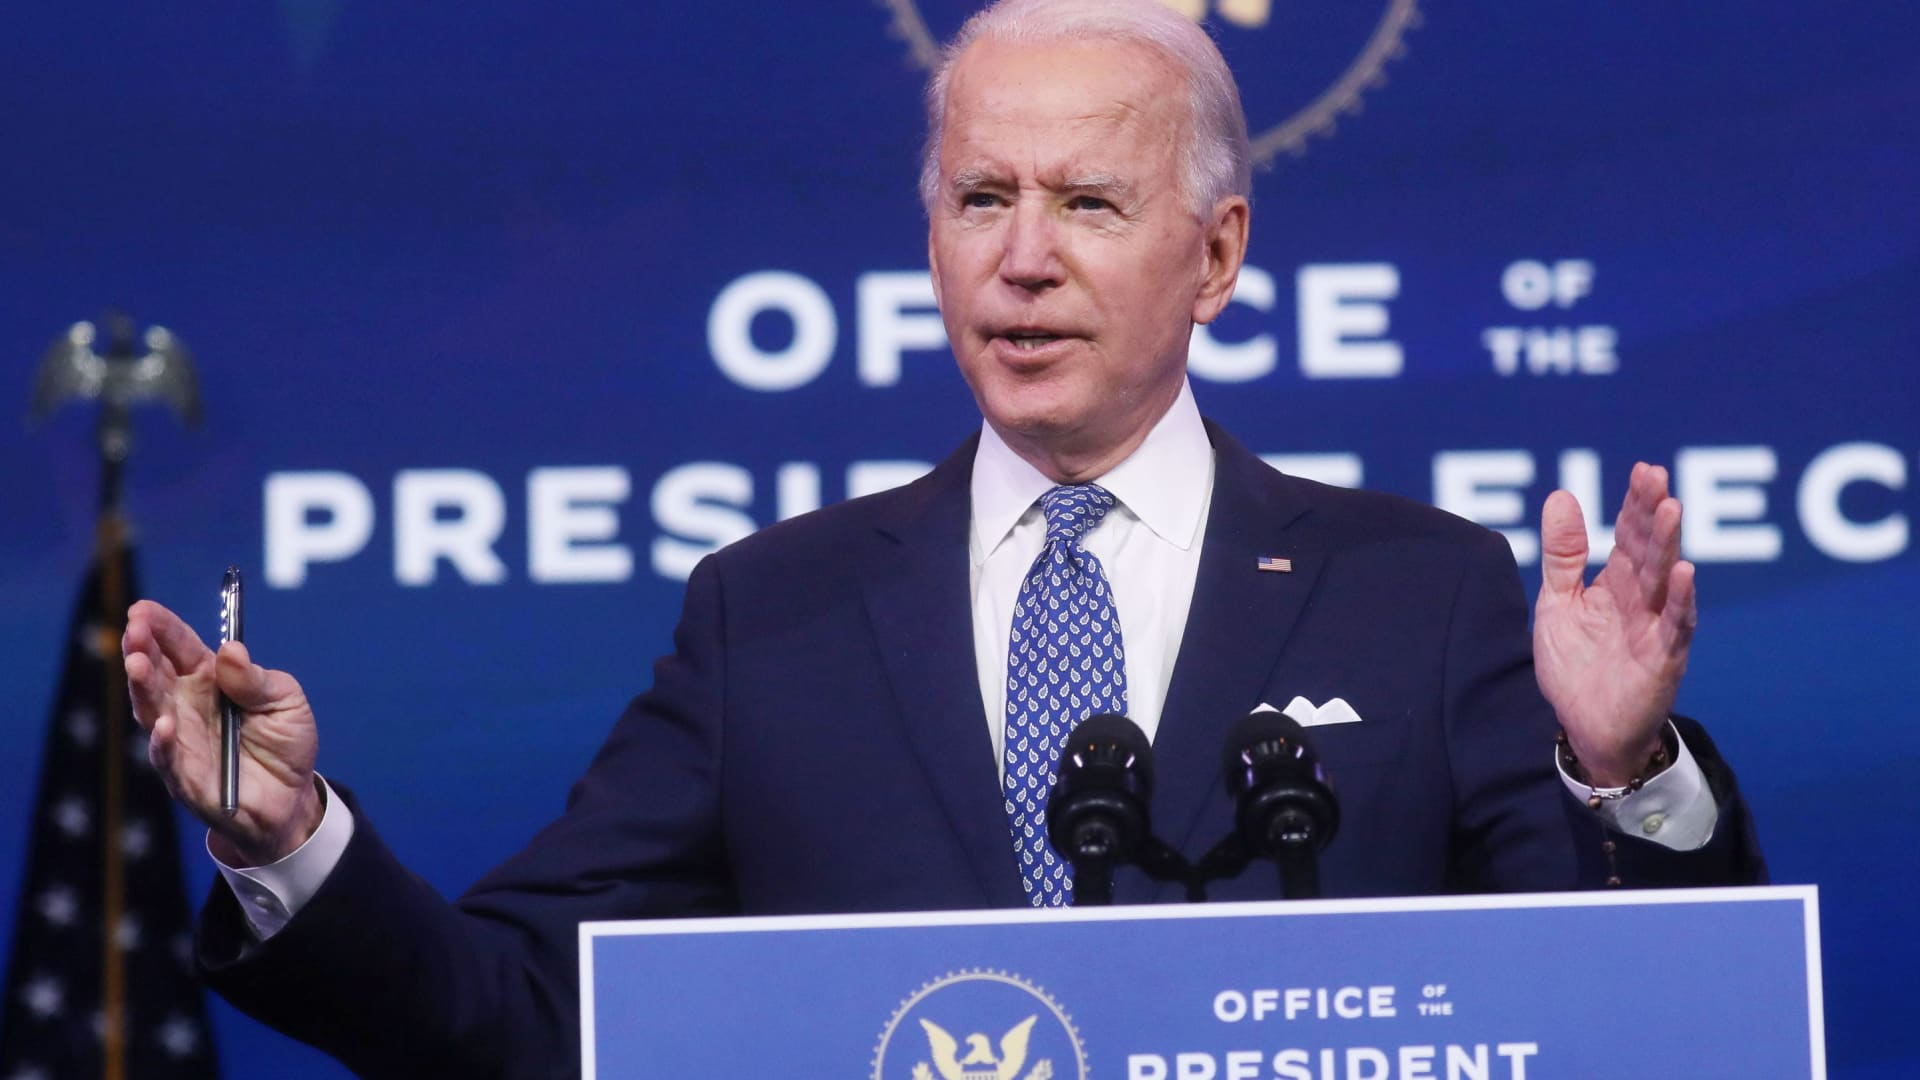 President-elect Joe Biden speaks about the recent massive cyber attack against the U.S. and also other Biden administration goals in Wilmington, Delaware, December 22, 2020.